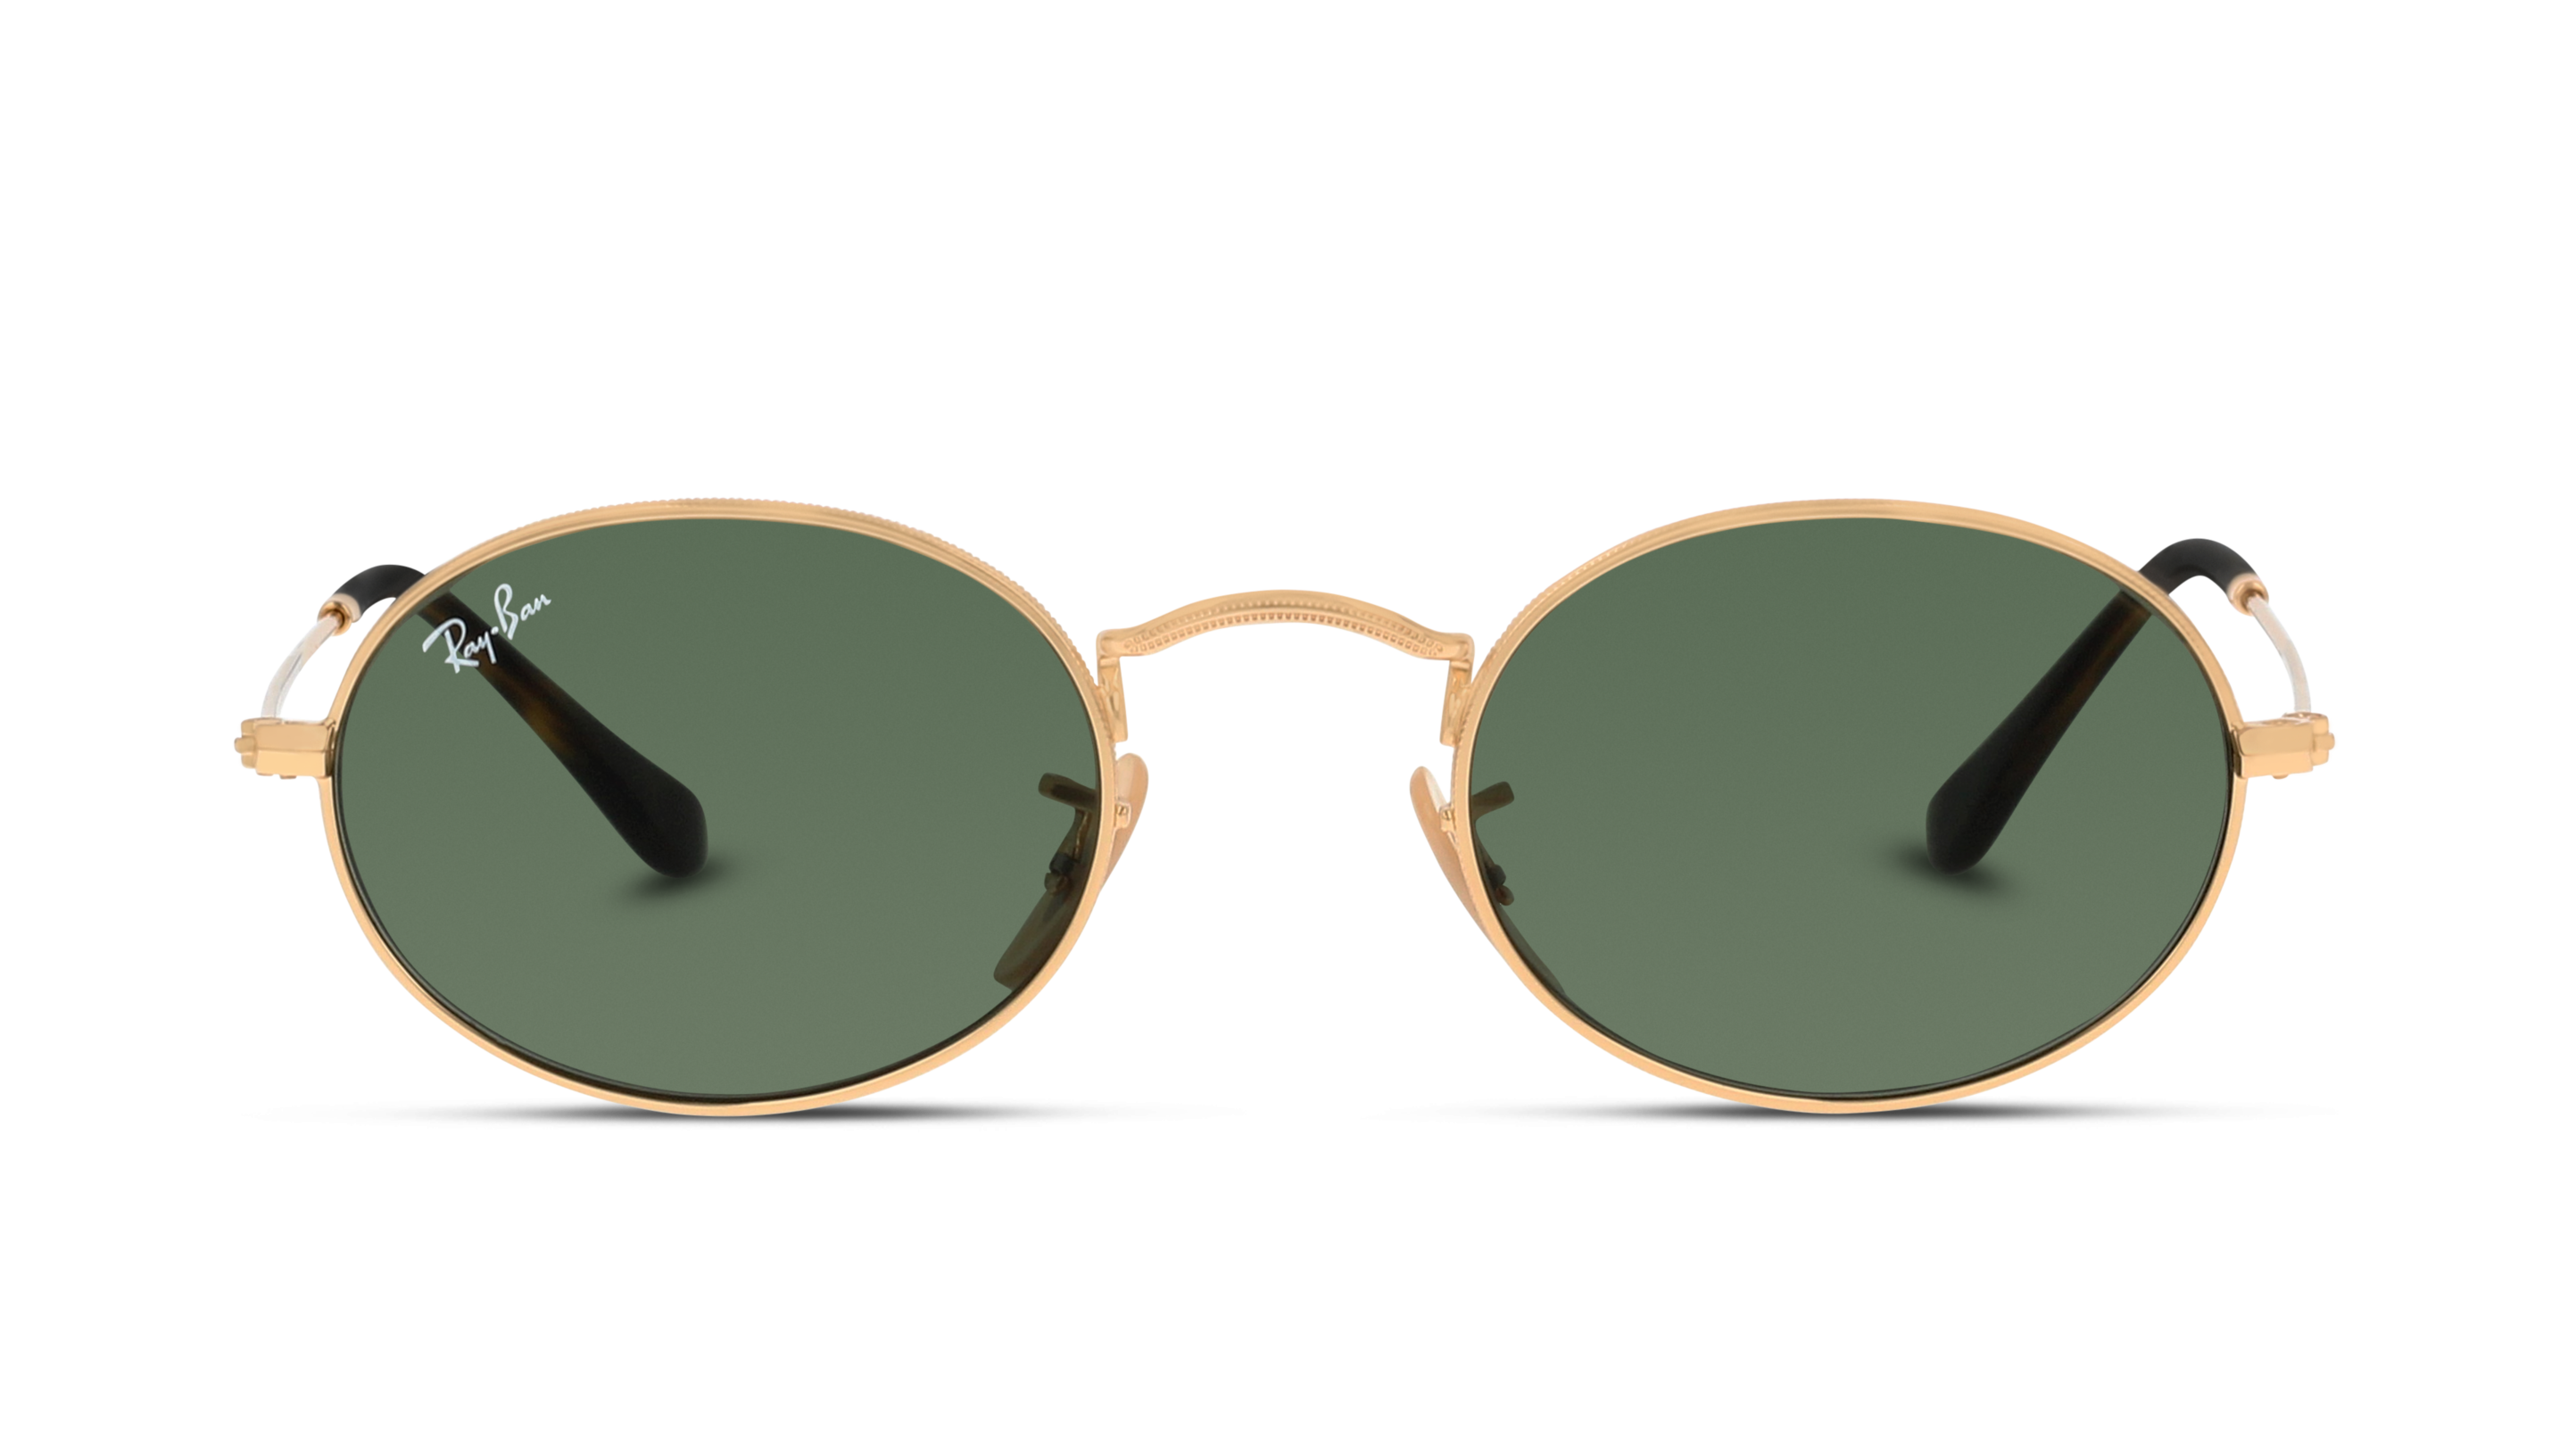 Front Ray-Ban Ray-Ban 0RB3547N 001 51/21 Goud/Groen